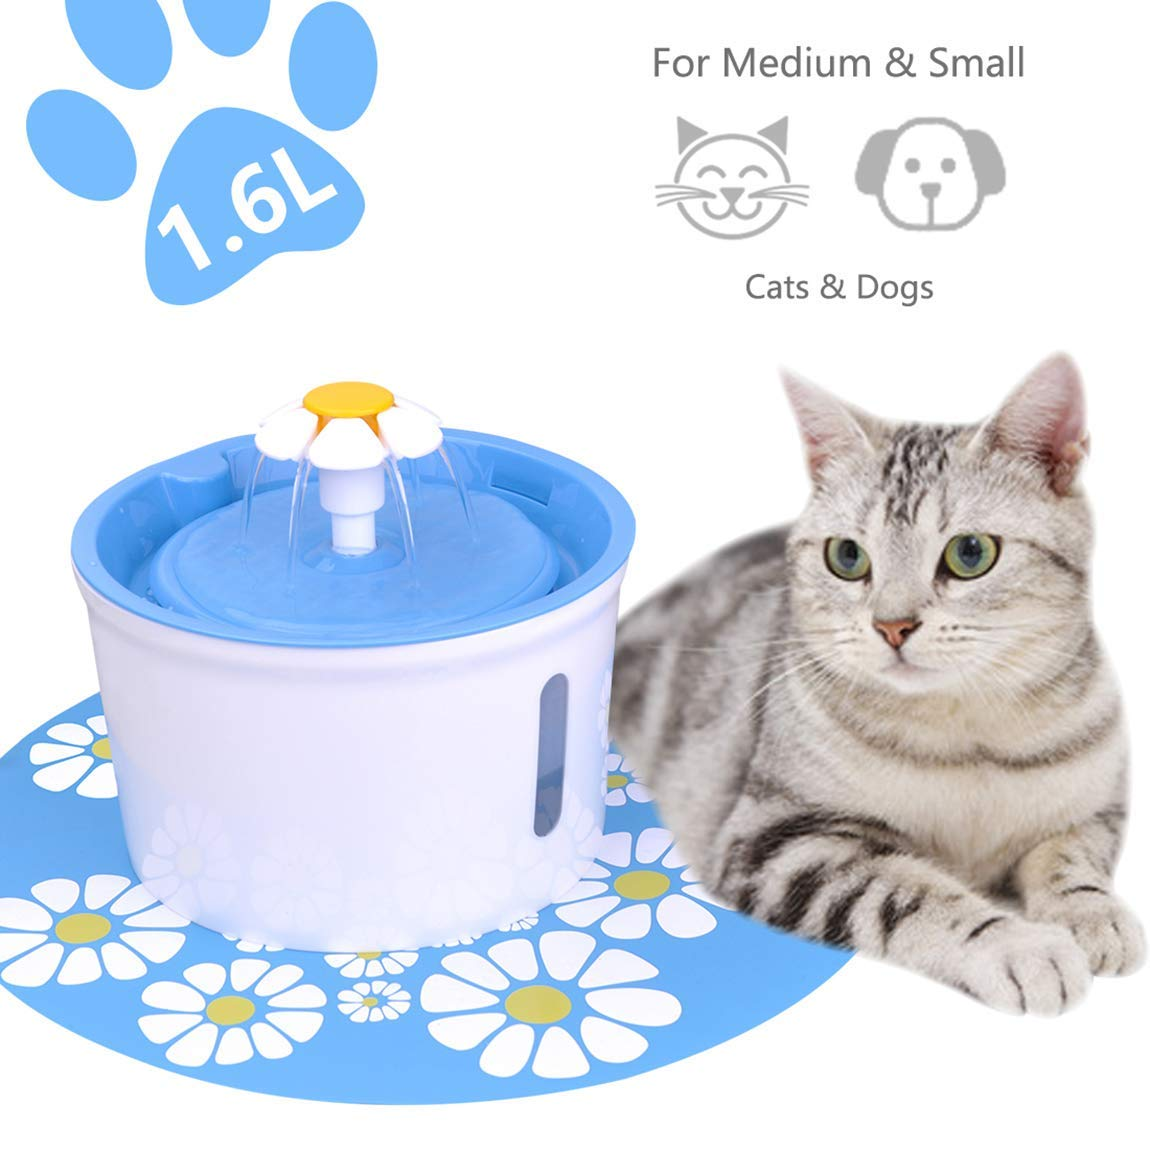 Iseebiz Automatic Pet Water Fountain, 1.6L Drinking Bowl Water Dispenser, 3 Flowing Modes, with 2 Activated Carbon Filters Plus Silicone Mat for Cats Dogs Birds etc.